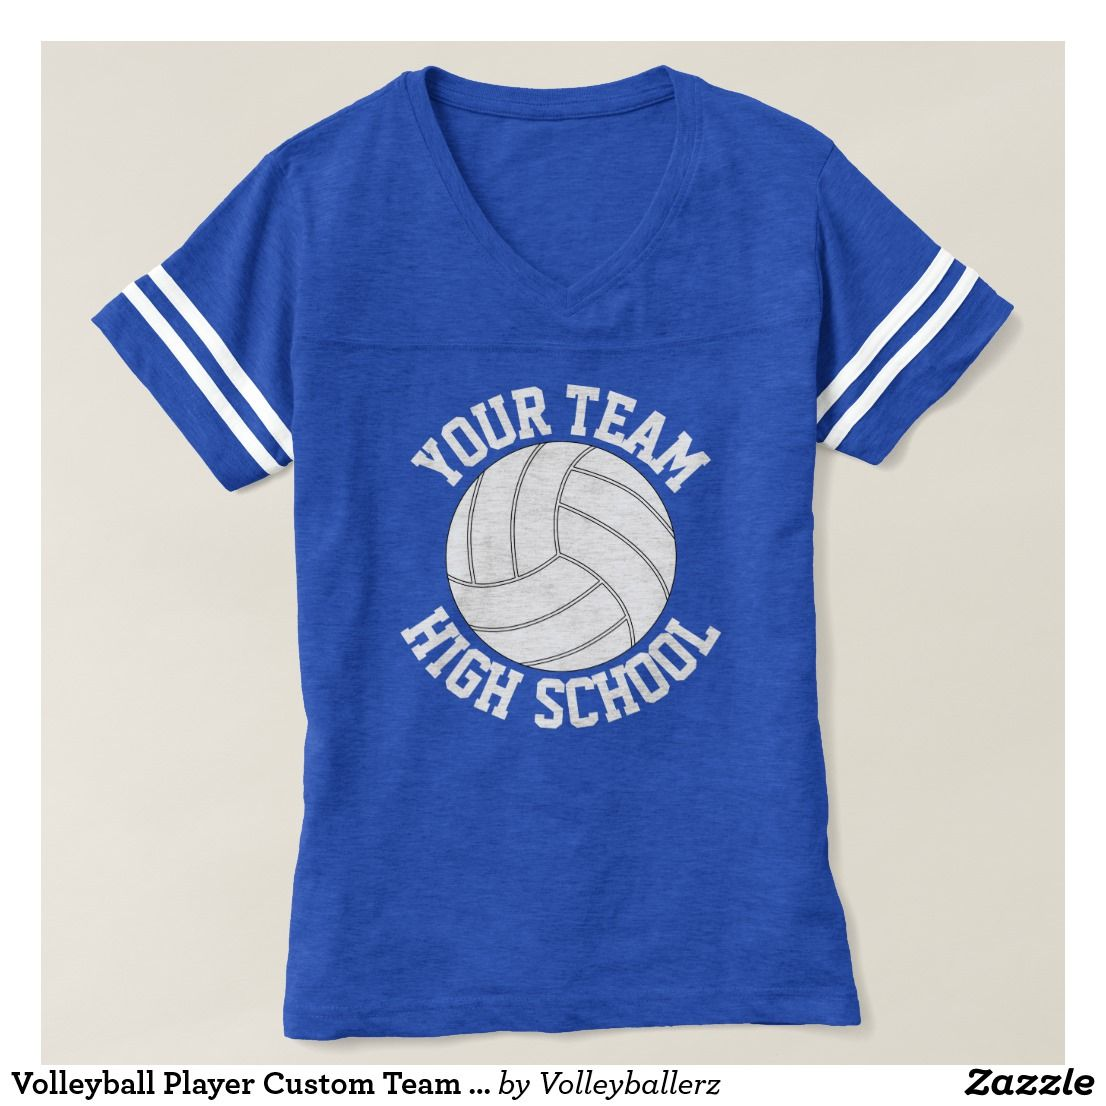 Volleyball Player Custom Team Name Jersey T Shirt Zazzle Com Customizable Shirts Shirts Volleyball Players